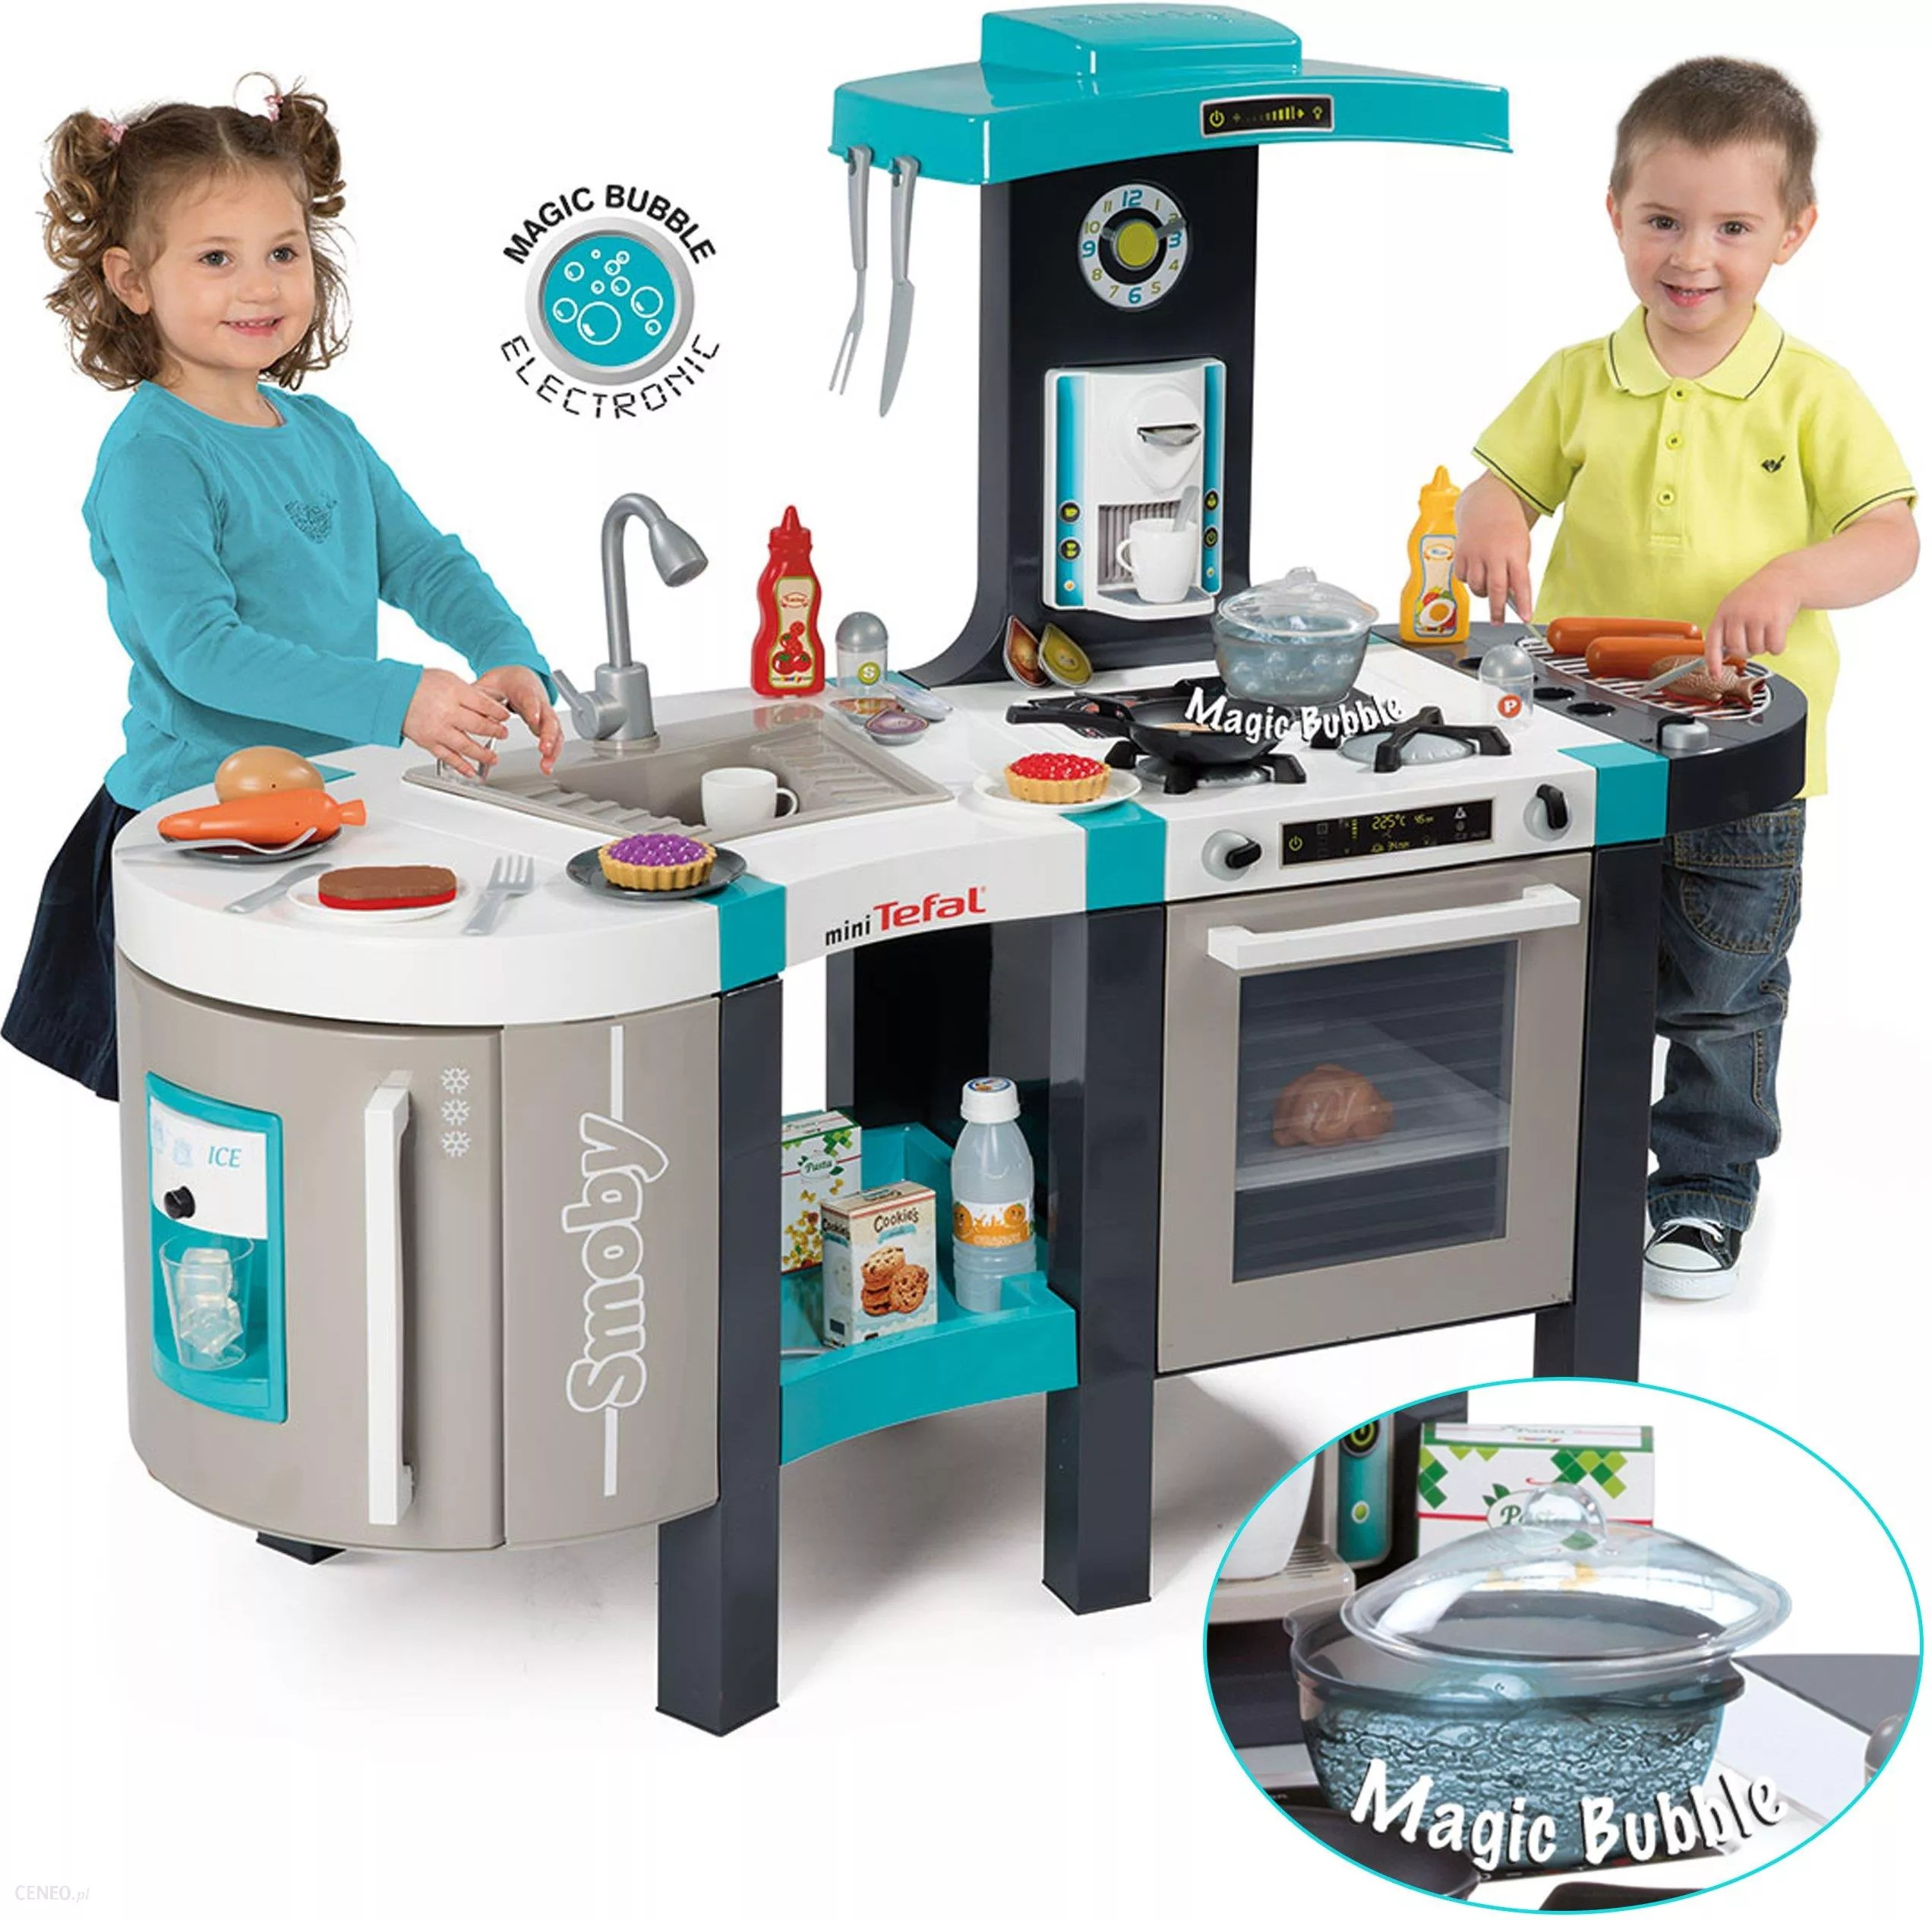 Cucina Smoby Xl Toys Center Smoby Duża Kuchnia French Touch Bubble 46 El